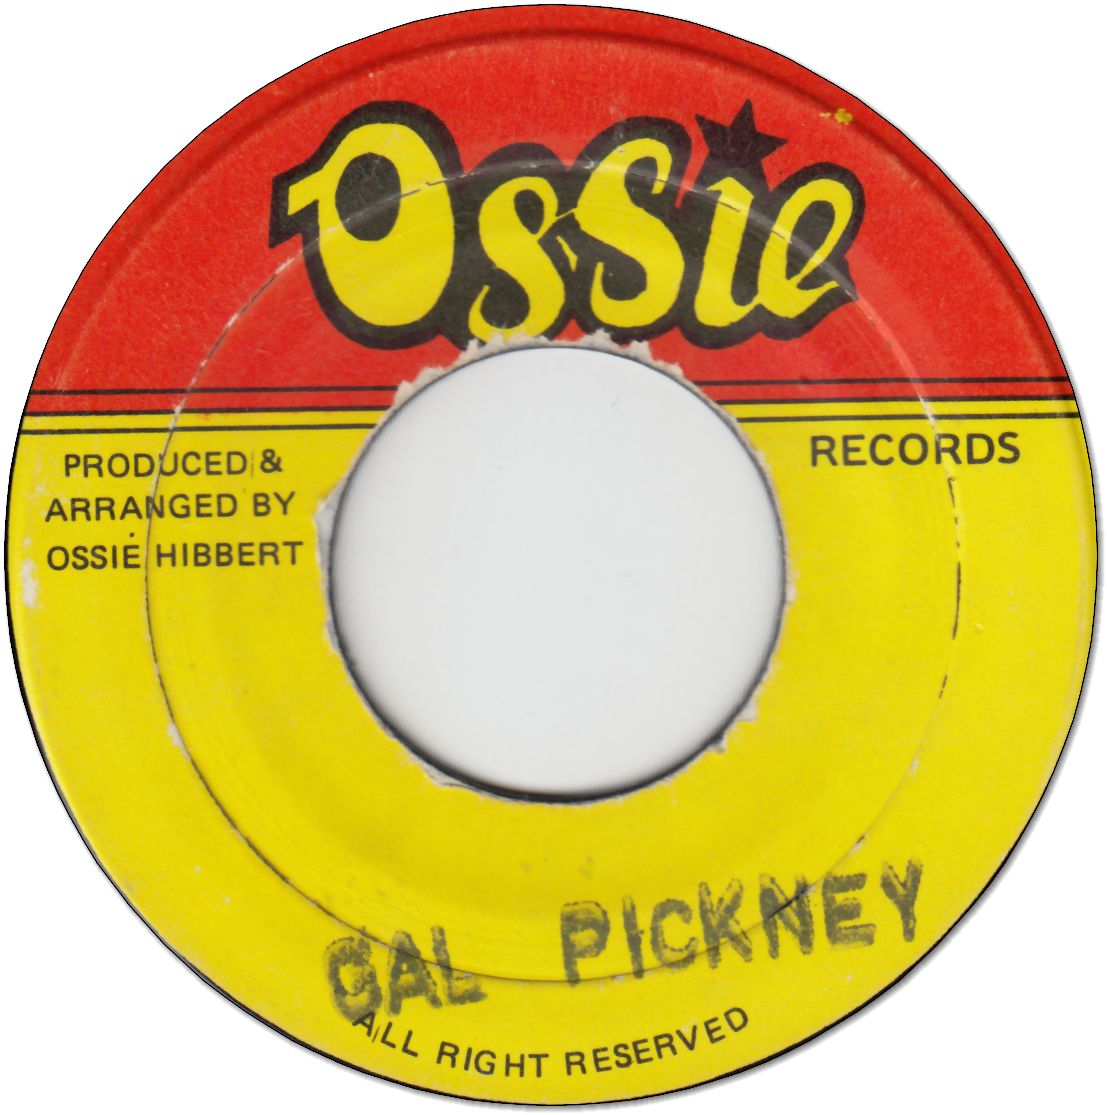 GAL PICKNEY (VG)